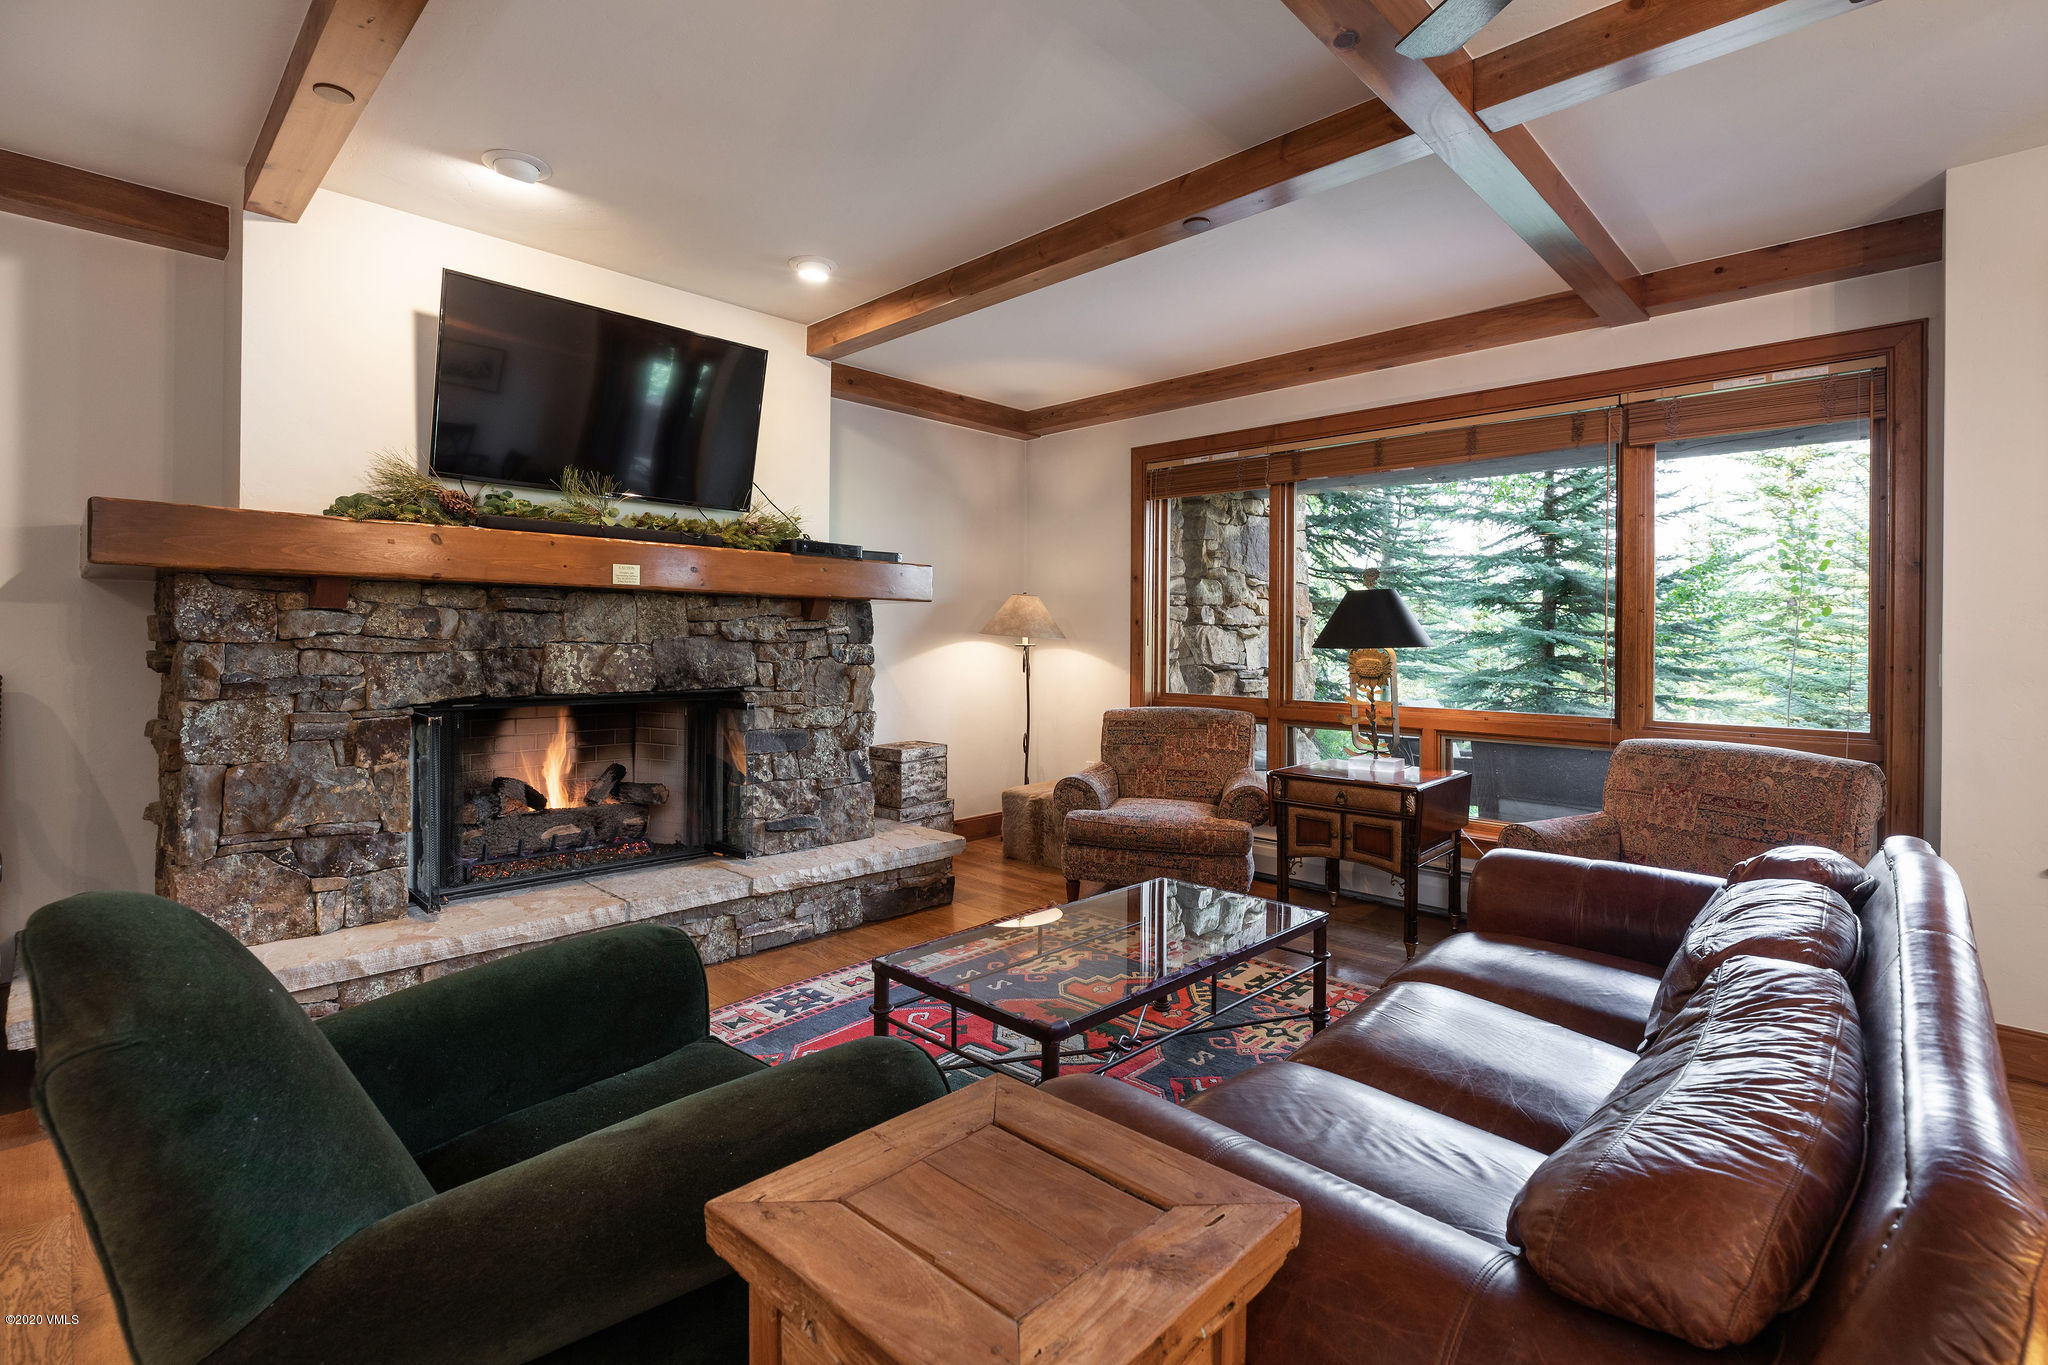 Opportunity to own in the popular Bear Paw Lodge in exclusive Bachelor Gulch Village. Easy and perfect ski-in/ski-out access located, literally, right on the ski mountain. Comfortable single-level ground floor residence with open floorplan for entertaining. Combined great room, dining room, and large kitchen. Great room features a gas fireplace with stone surround and direct access to the adjacent extended patio. Master bedroom located separately from secondary bedrooms with ample closet space and direct access to outdoors. Property situated in a private location facing northeast. Charming design. Great on-site management and amenities with a front desk, year-round pool, three hot tubs and underground parking. Sold furnished.